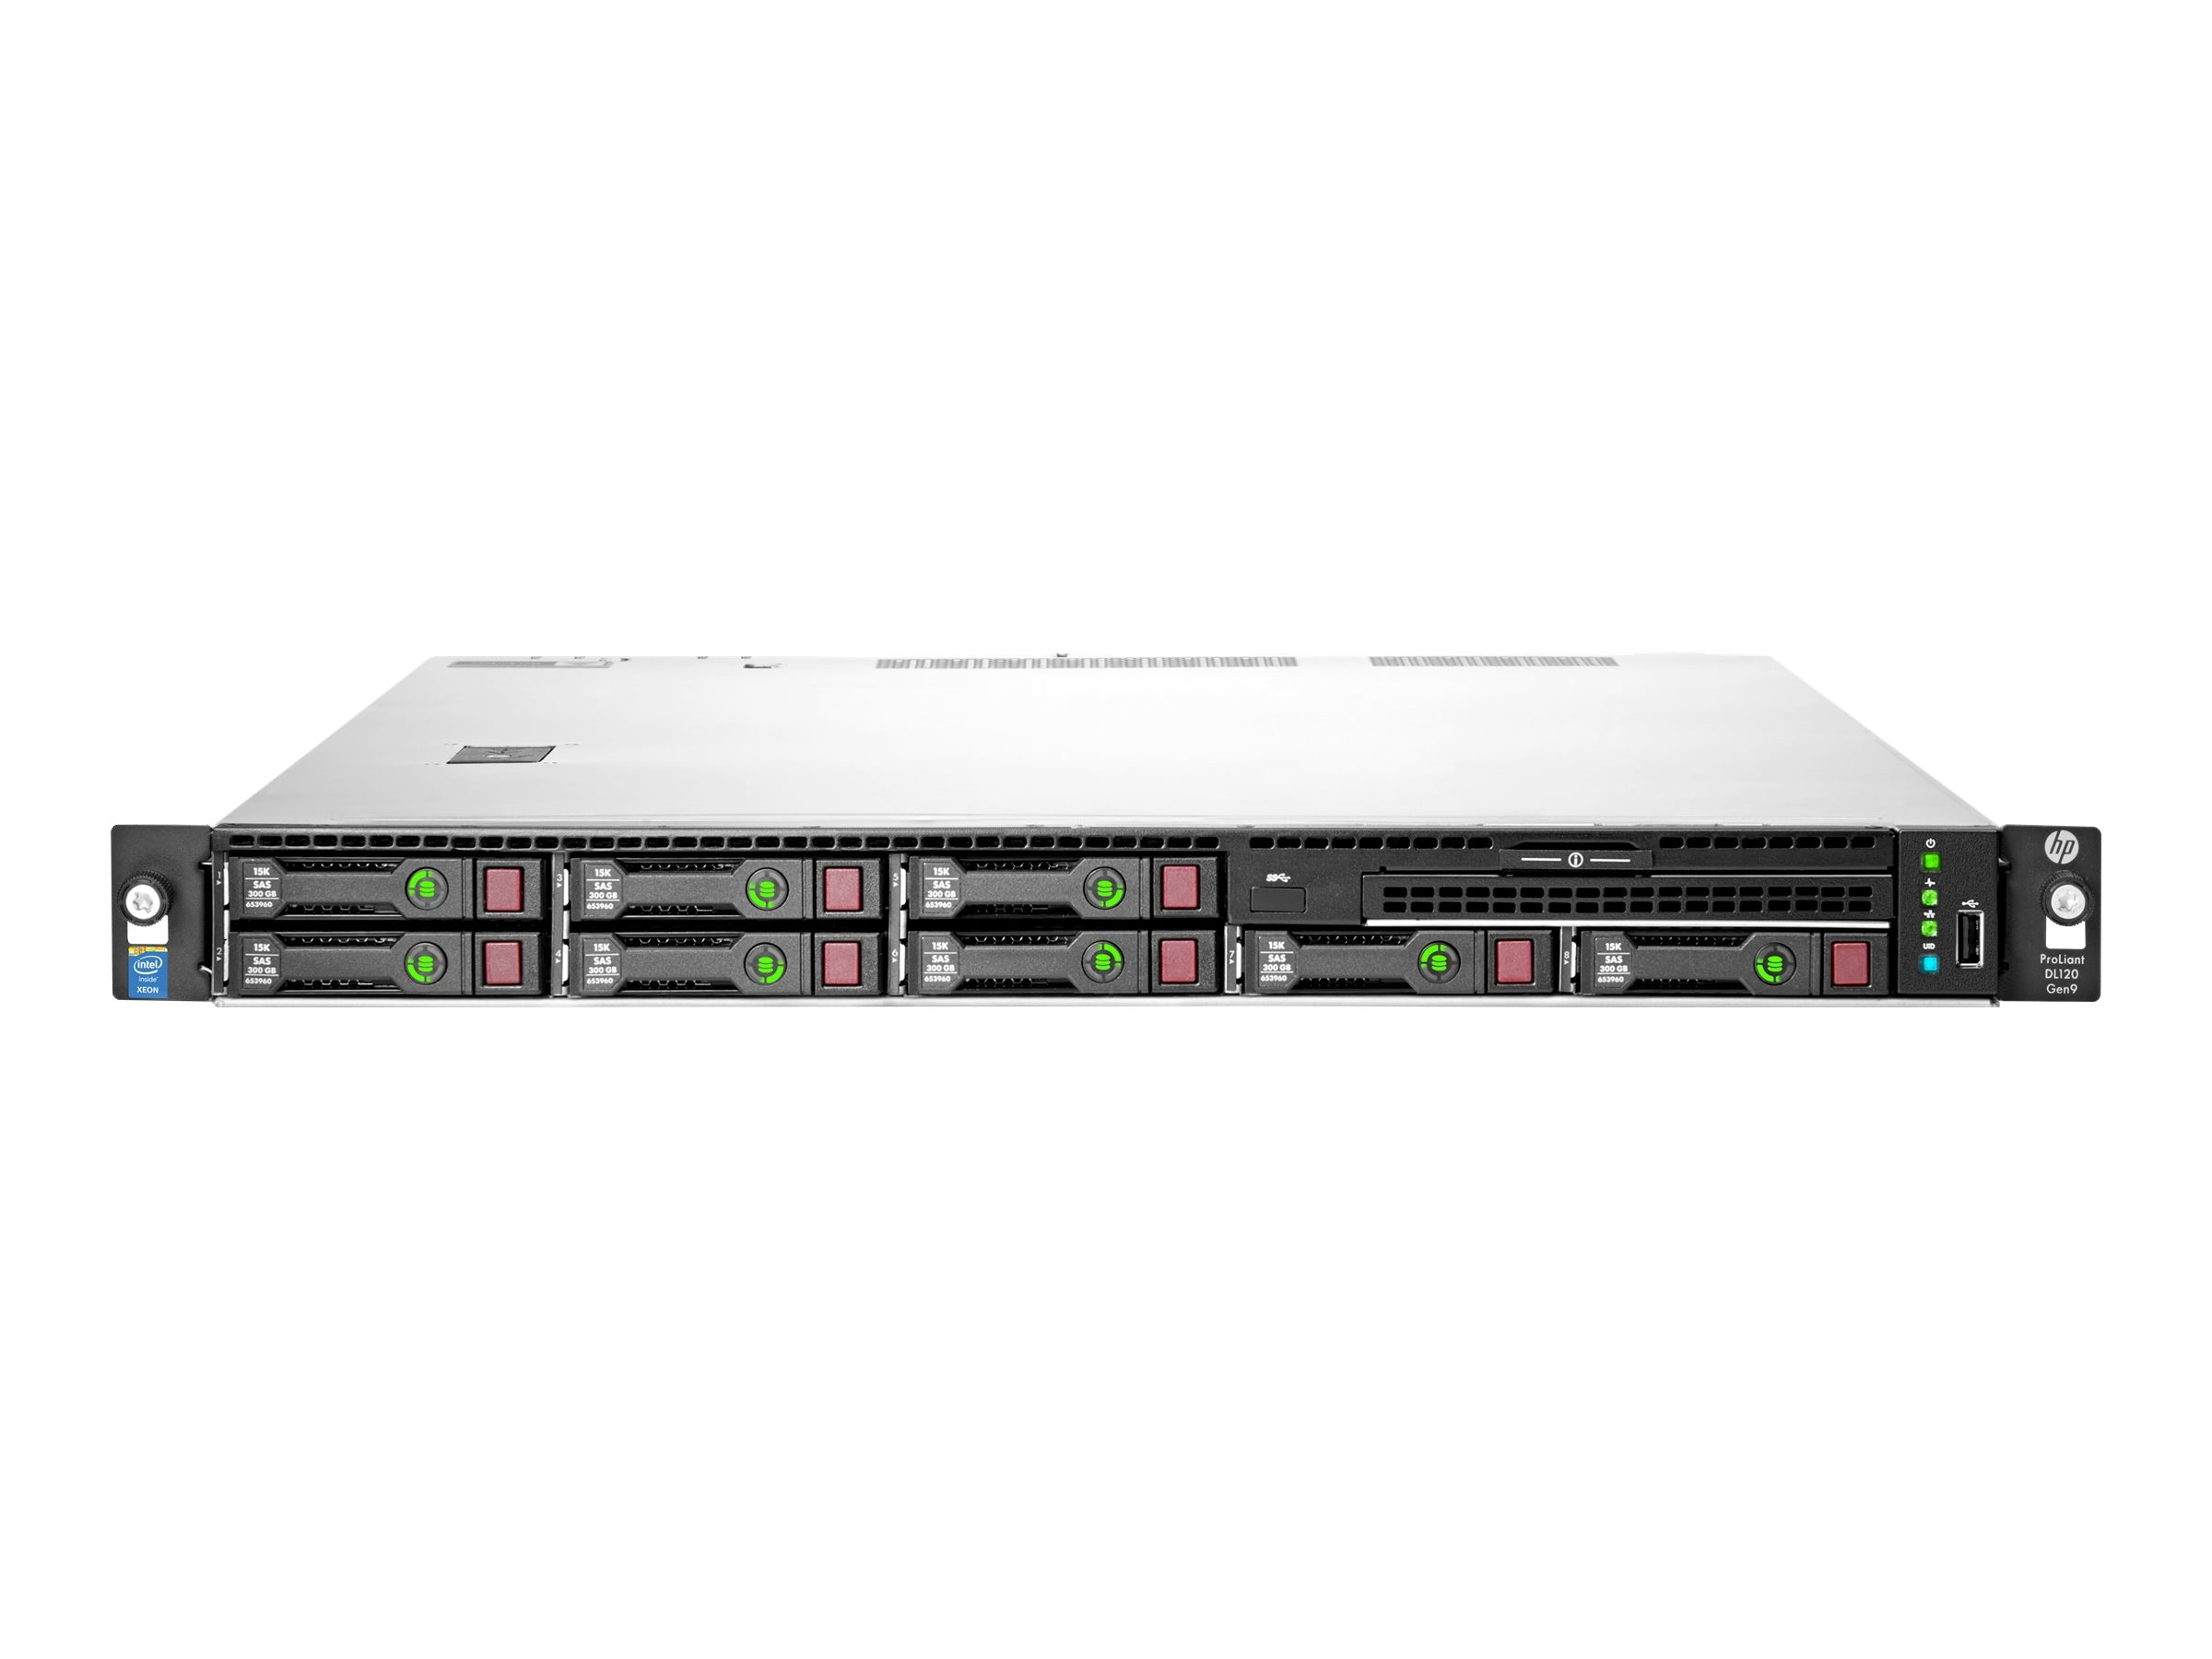 Hewlett Packard Enterprise 788091-S01 Image 2